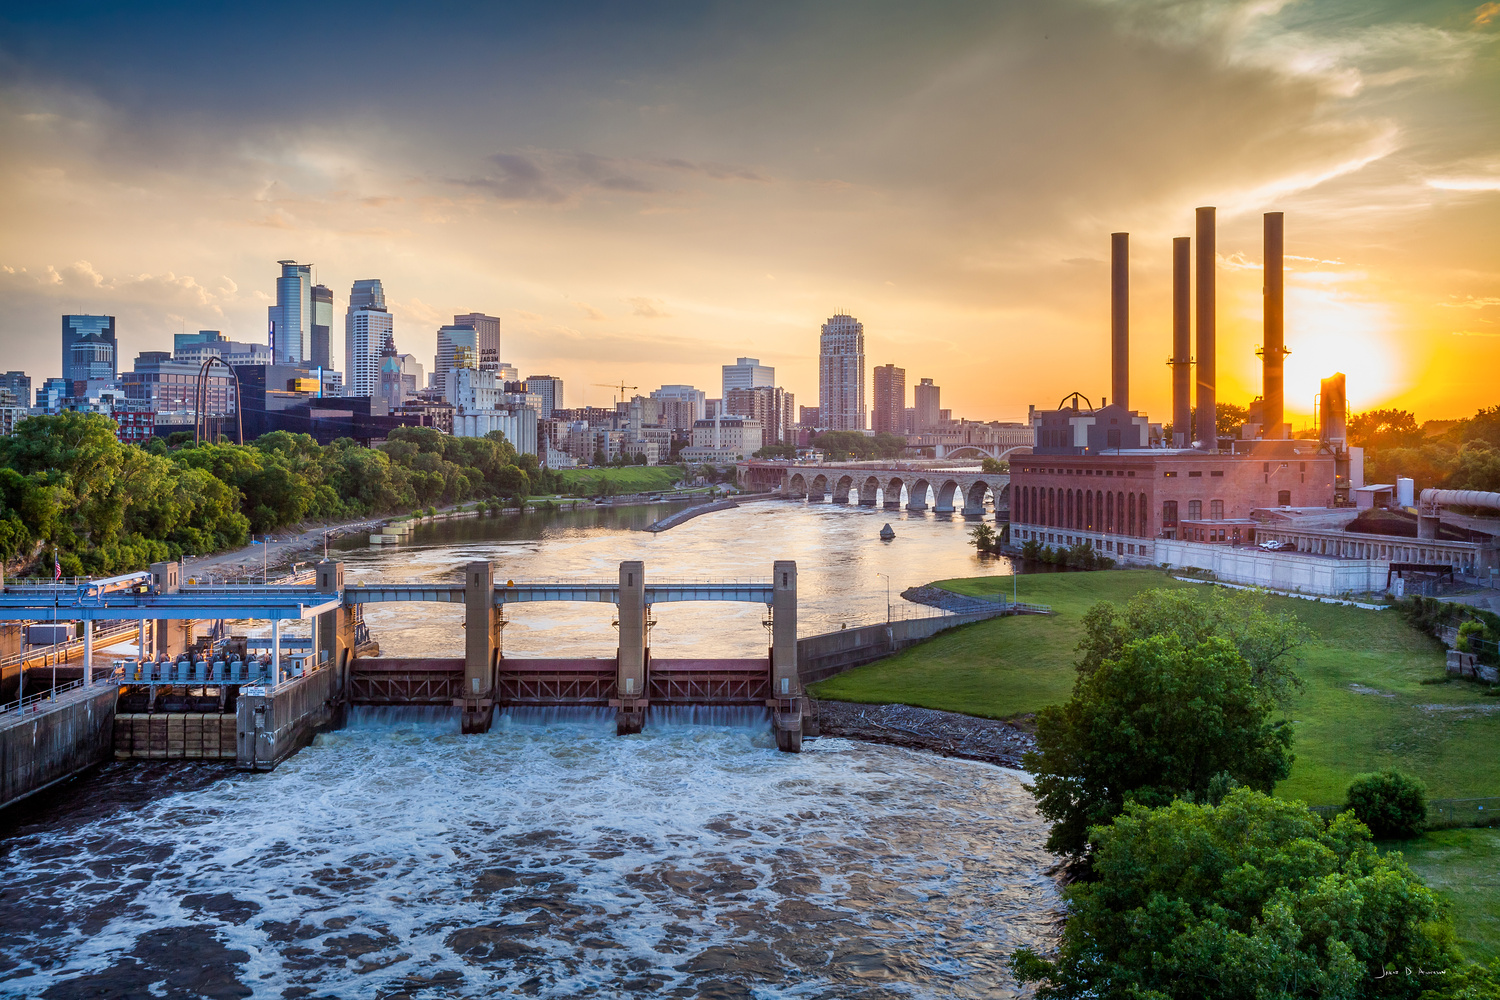 Minneapolis Cityscape by Jakob Anderson